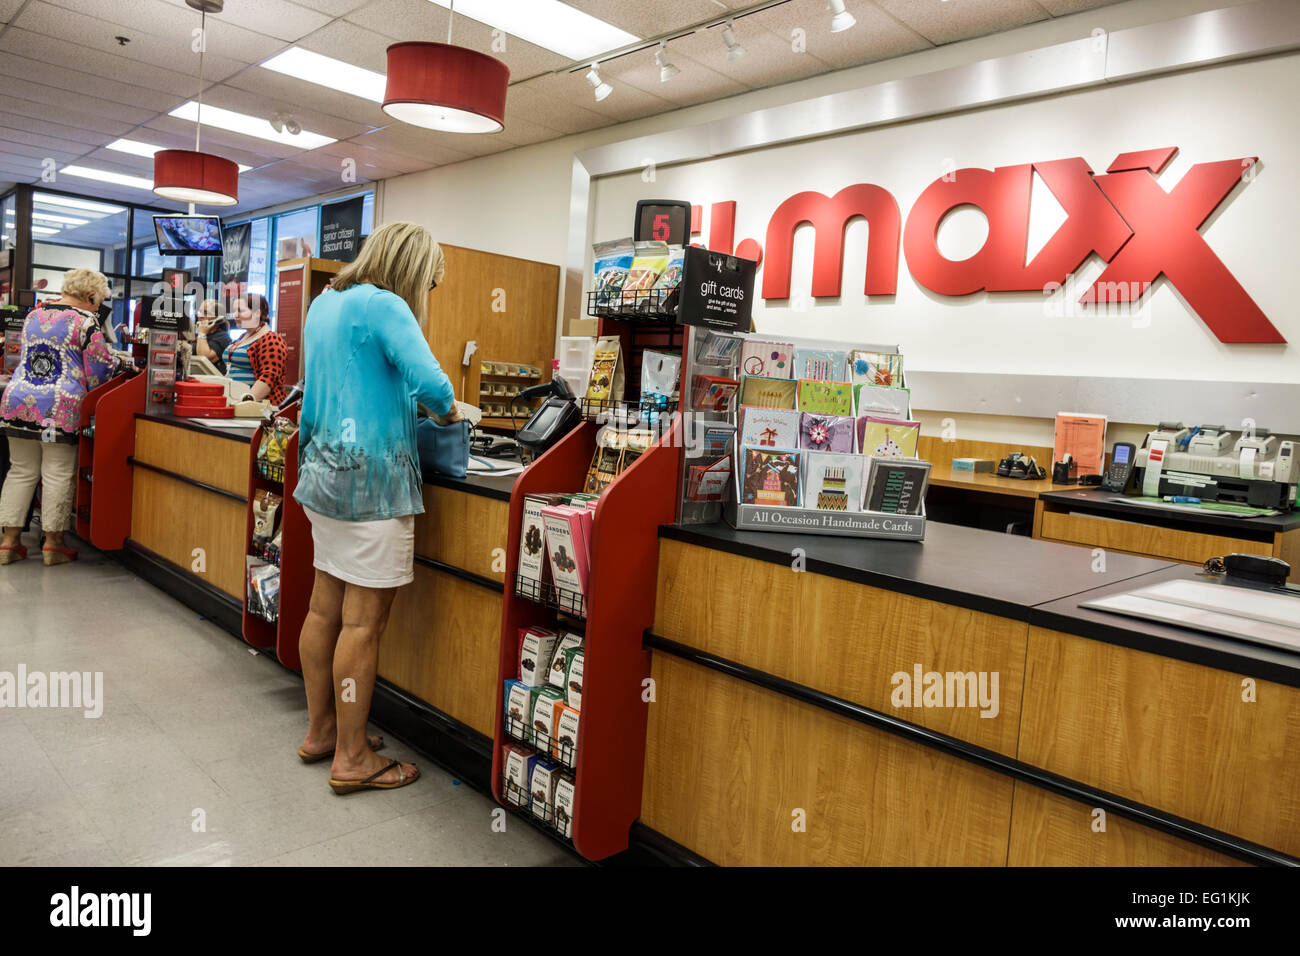 Ross Most Disastrous Stores Retail 164710874 likewise Los angeles zoo discounts further T K further Tj Maxx Hours additionally Marshalls Paramus. on marshalls department store